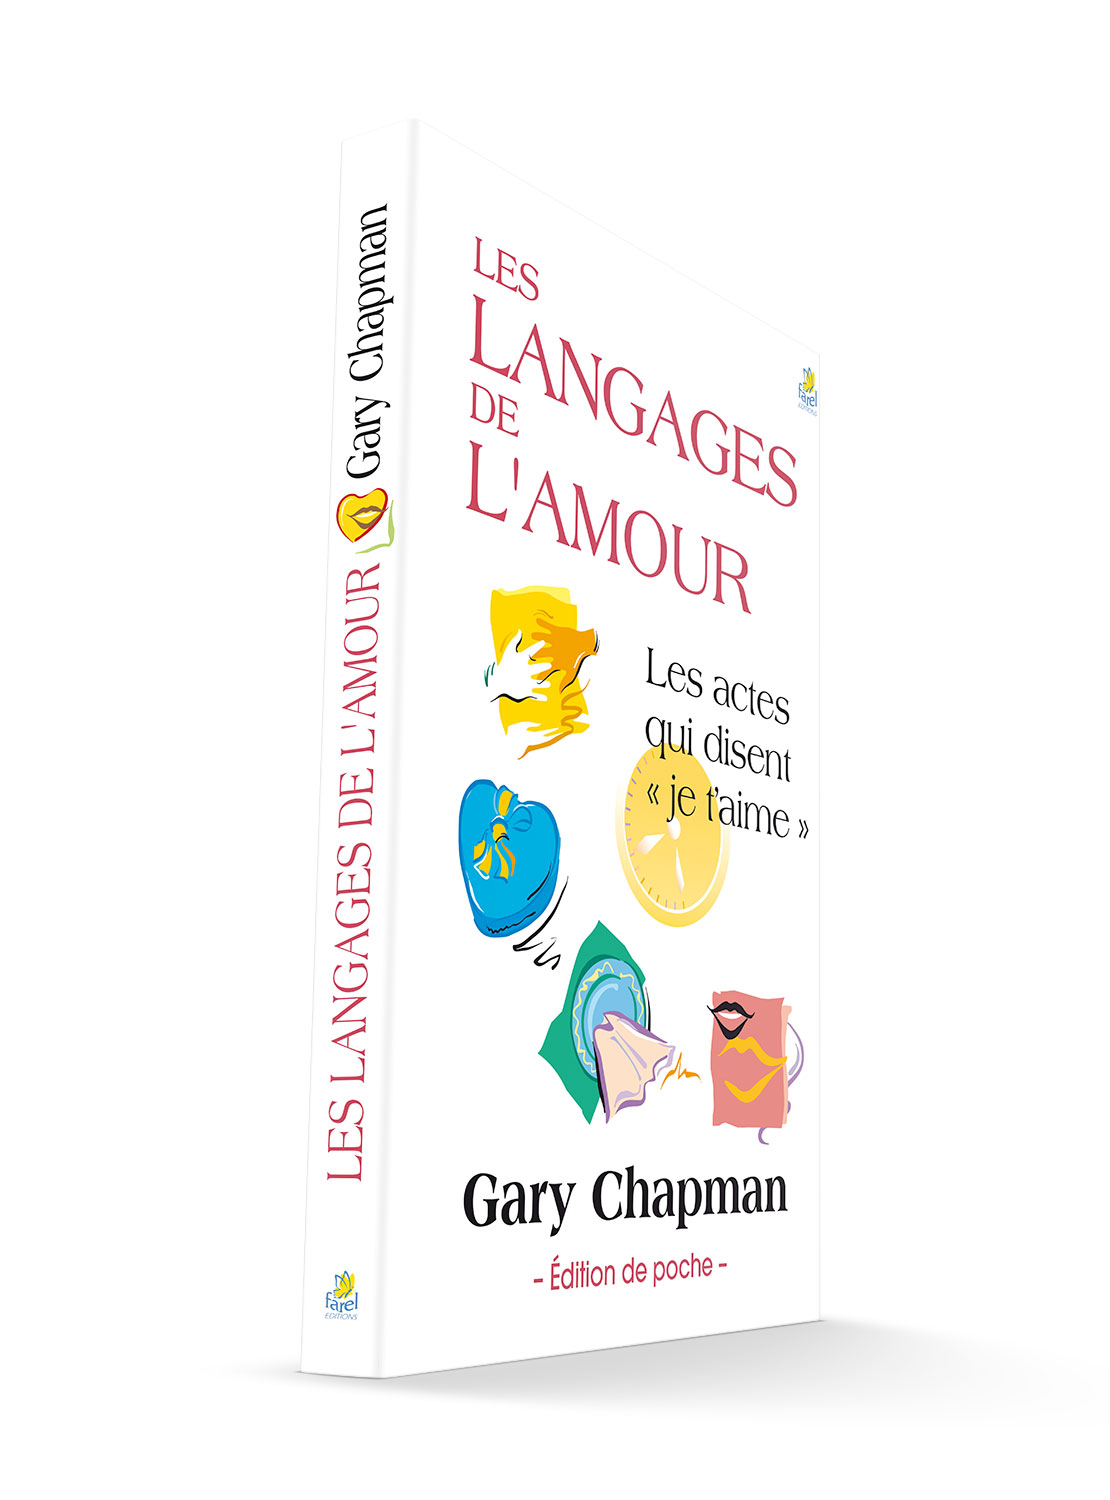 9782863144527, langages, amour, gary chapman